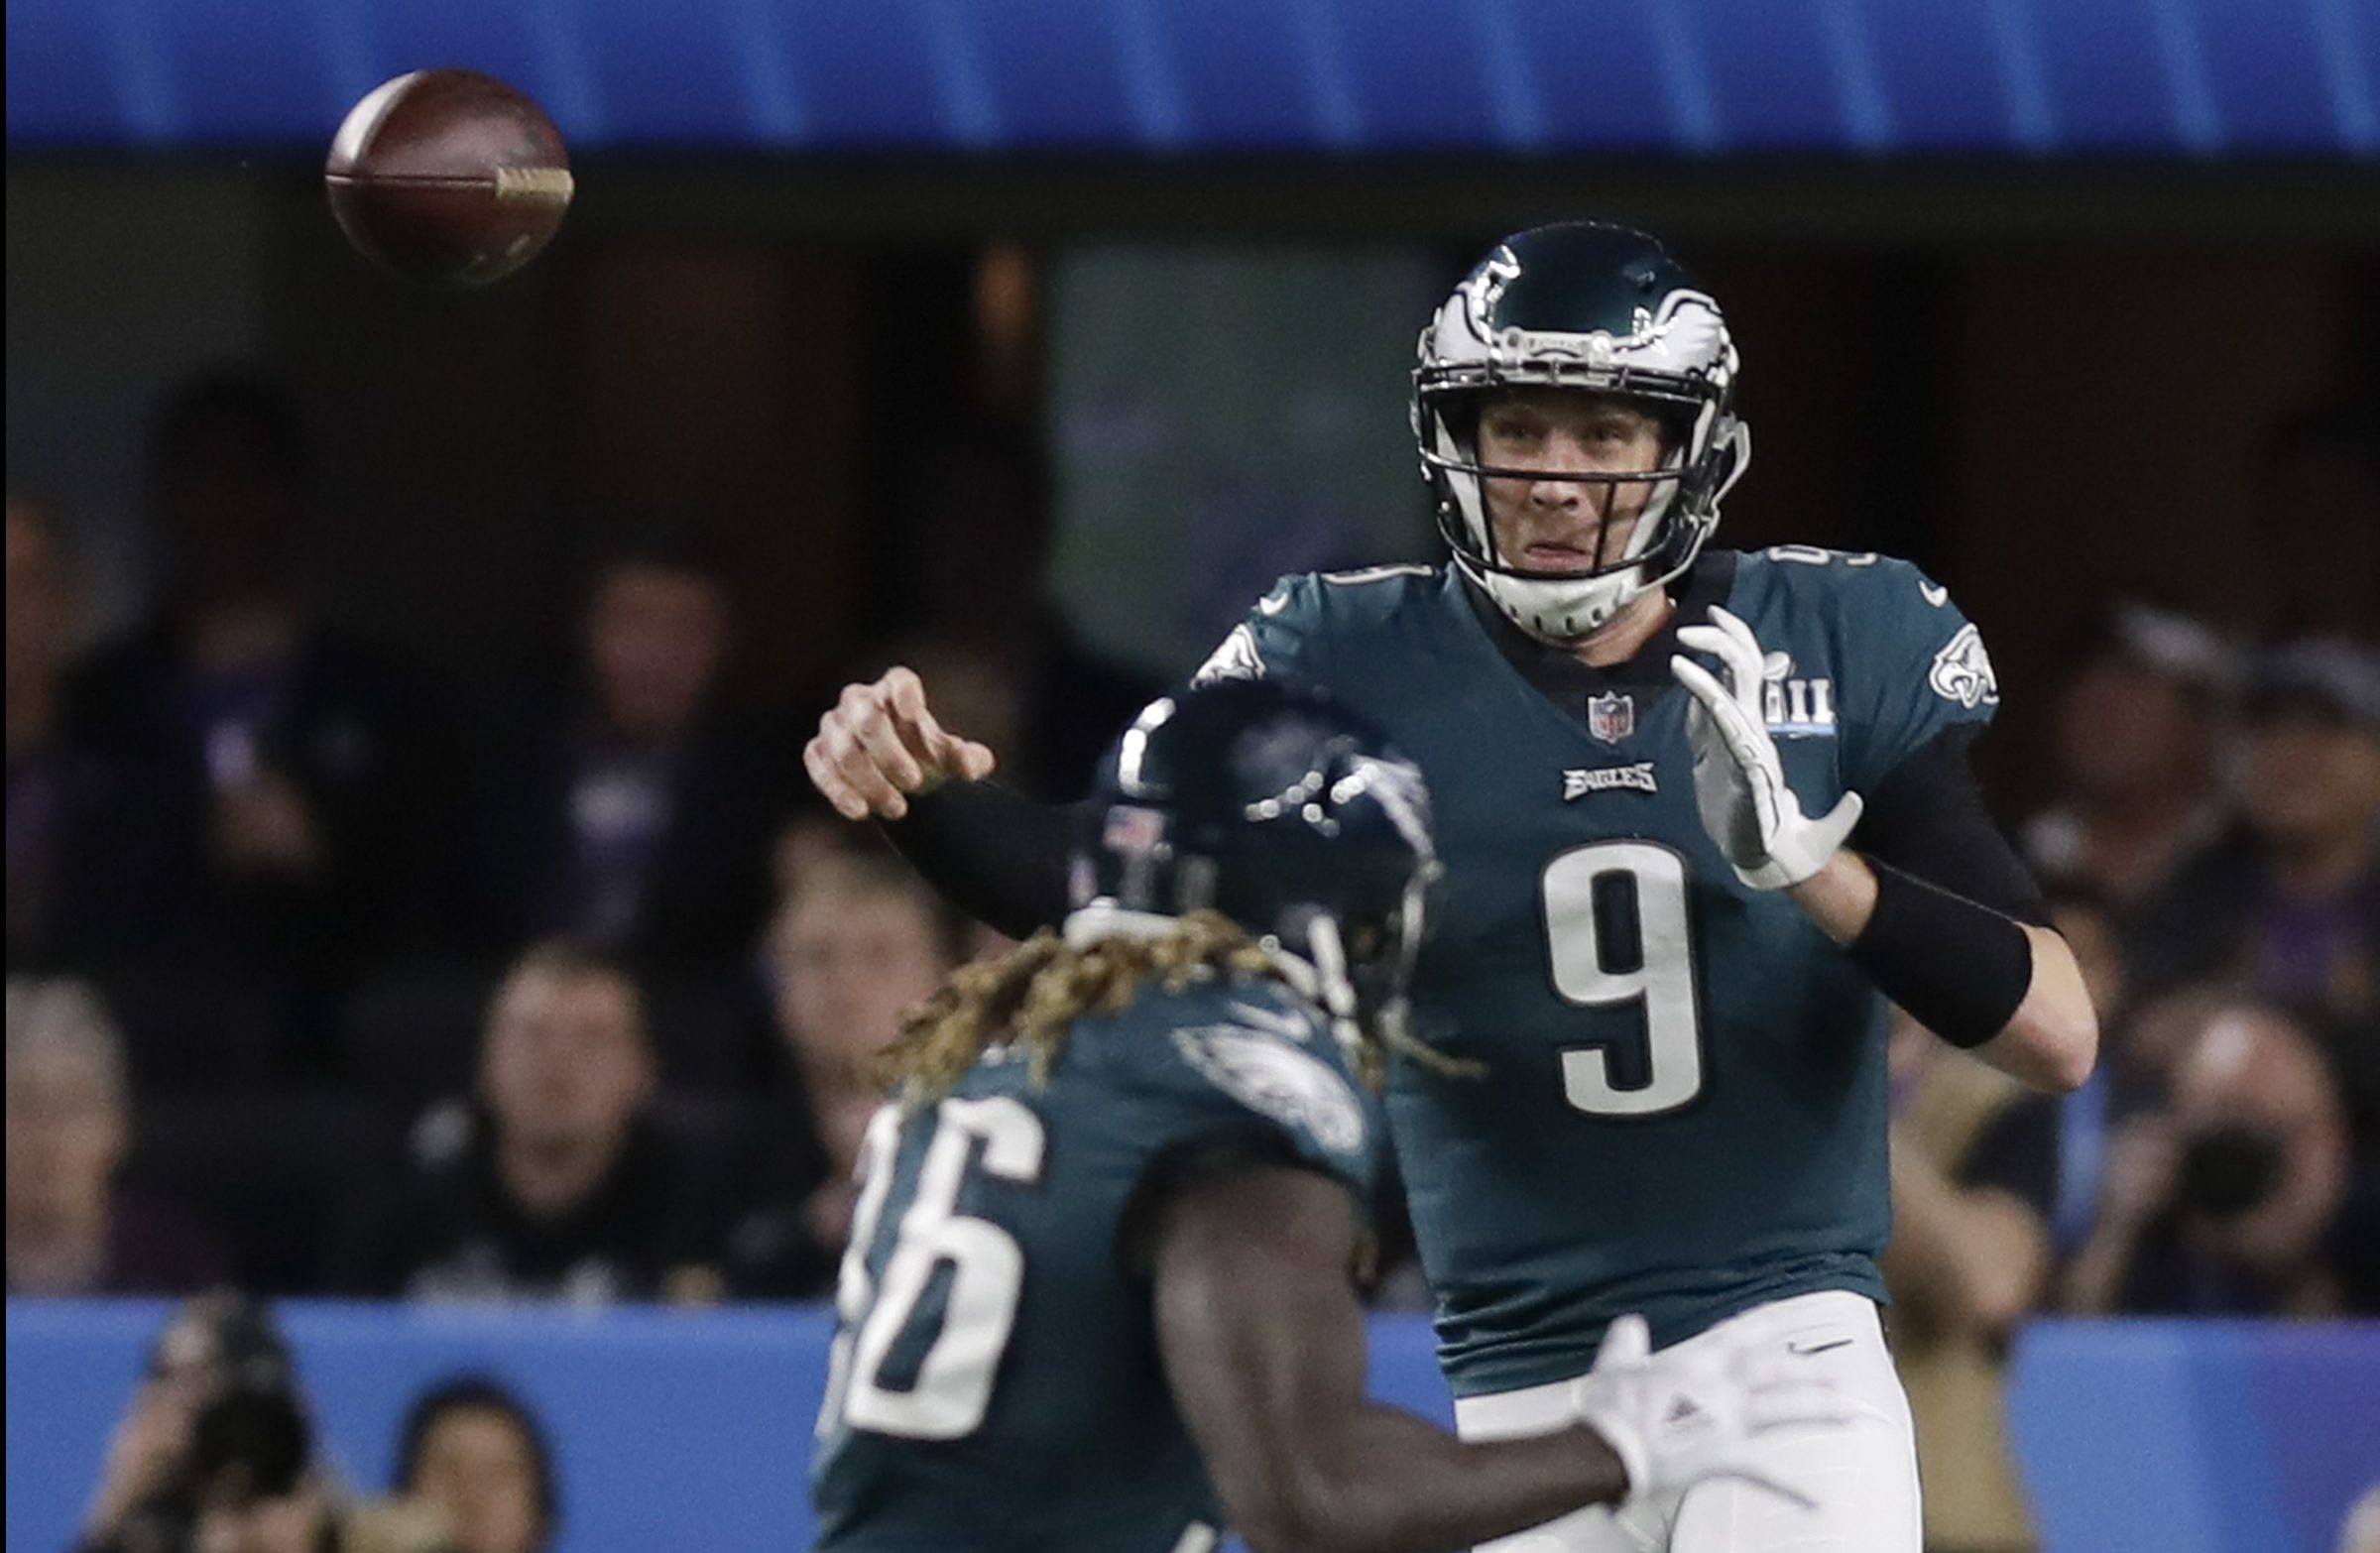 Eagles quarterback Nick Foles throws a pass during the second quarter of the Super Bowl.